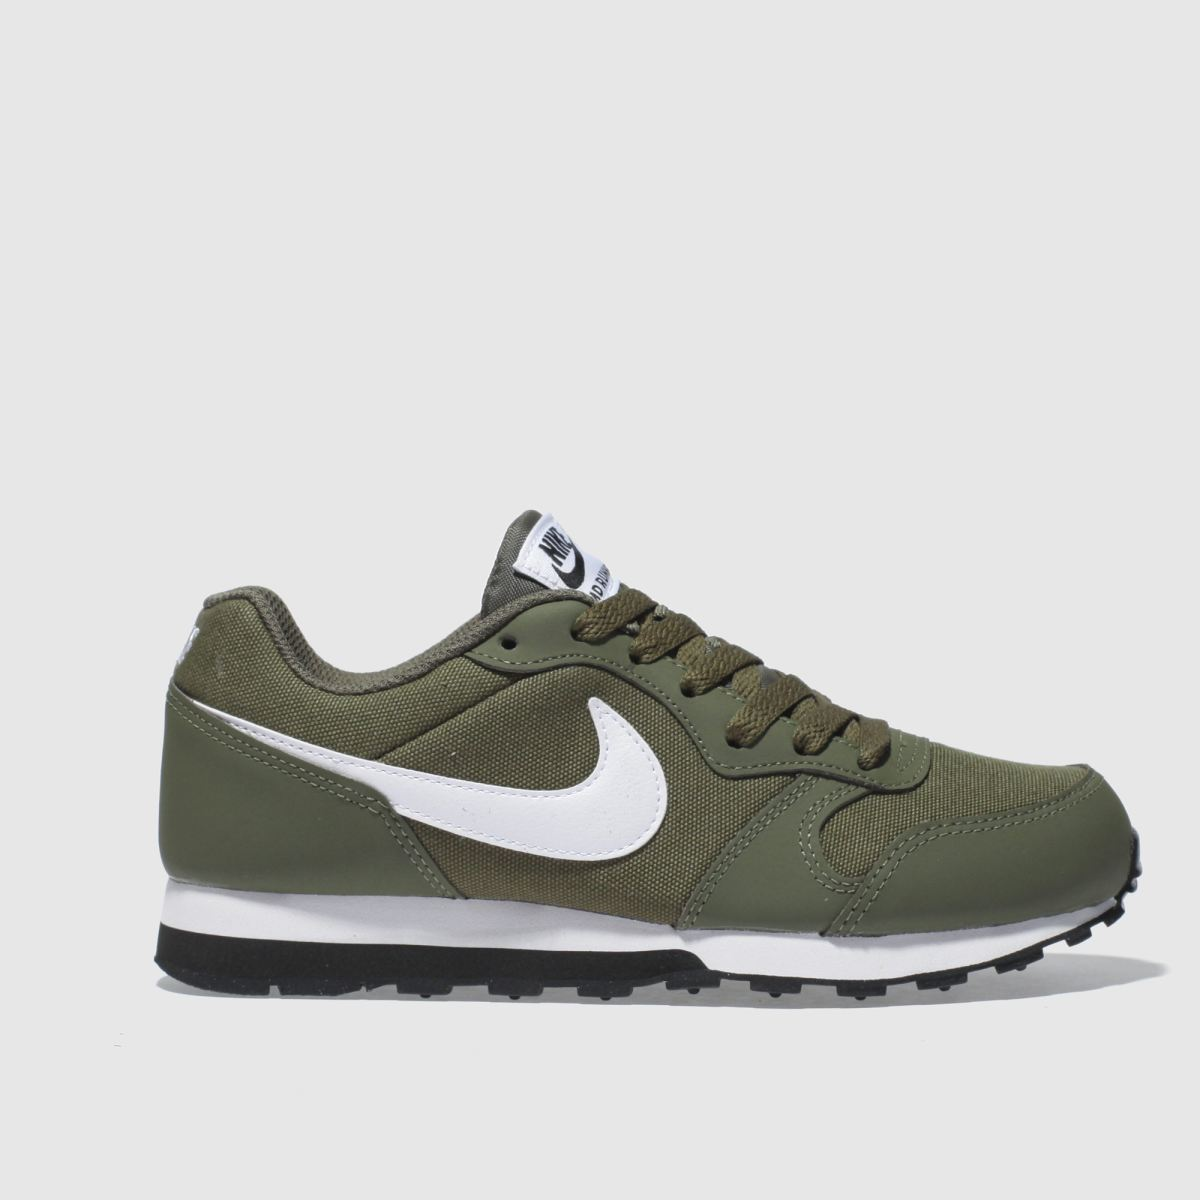 Nike Khaki Md Runner 2 Unisex Youth Youth